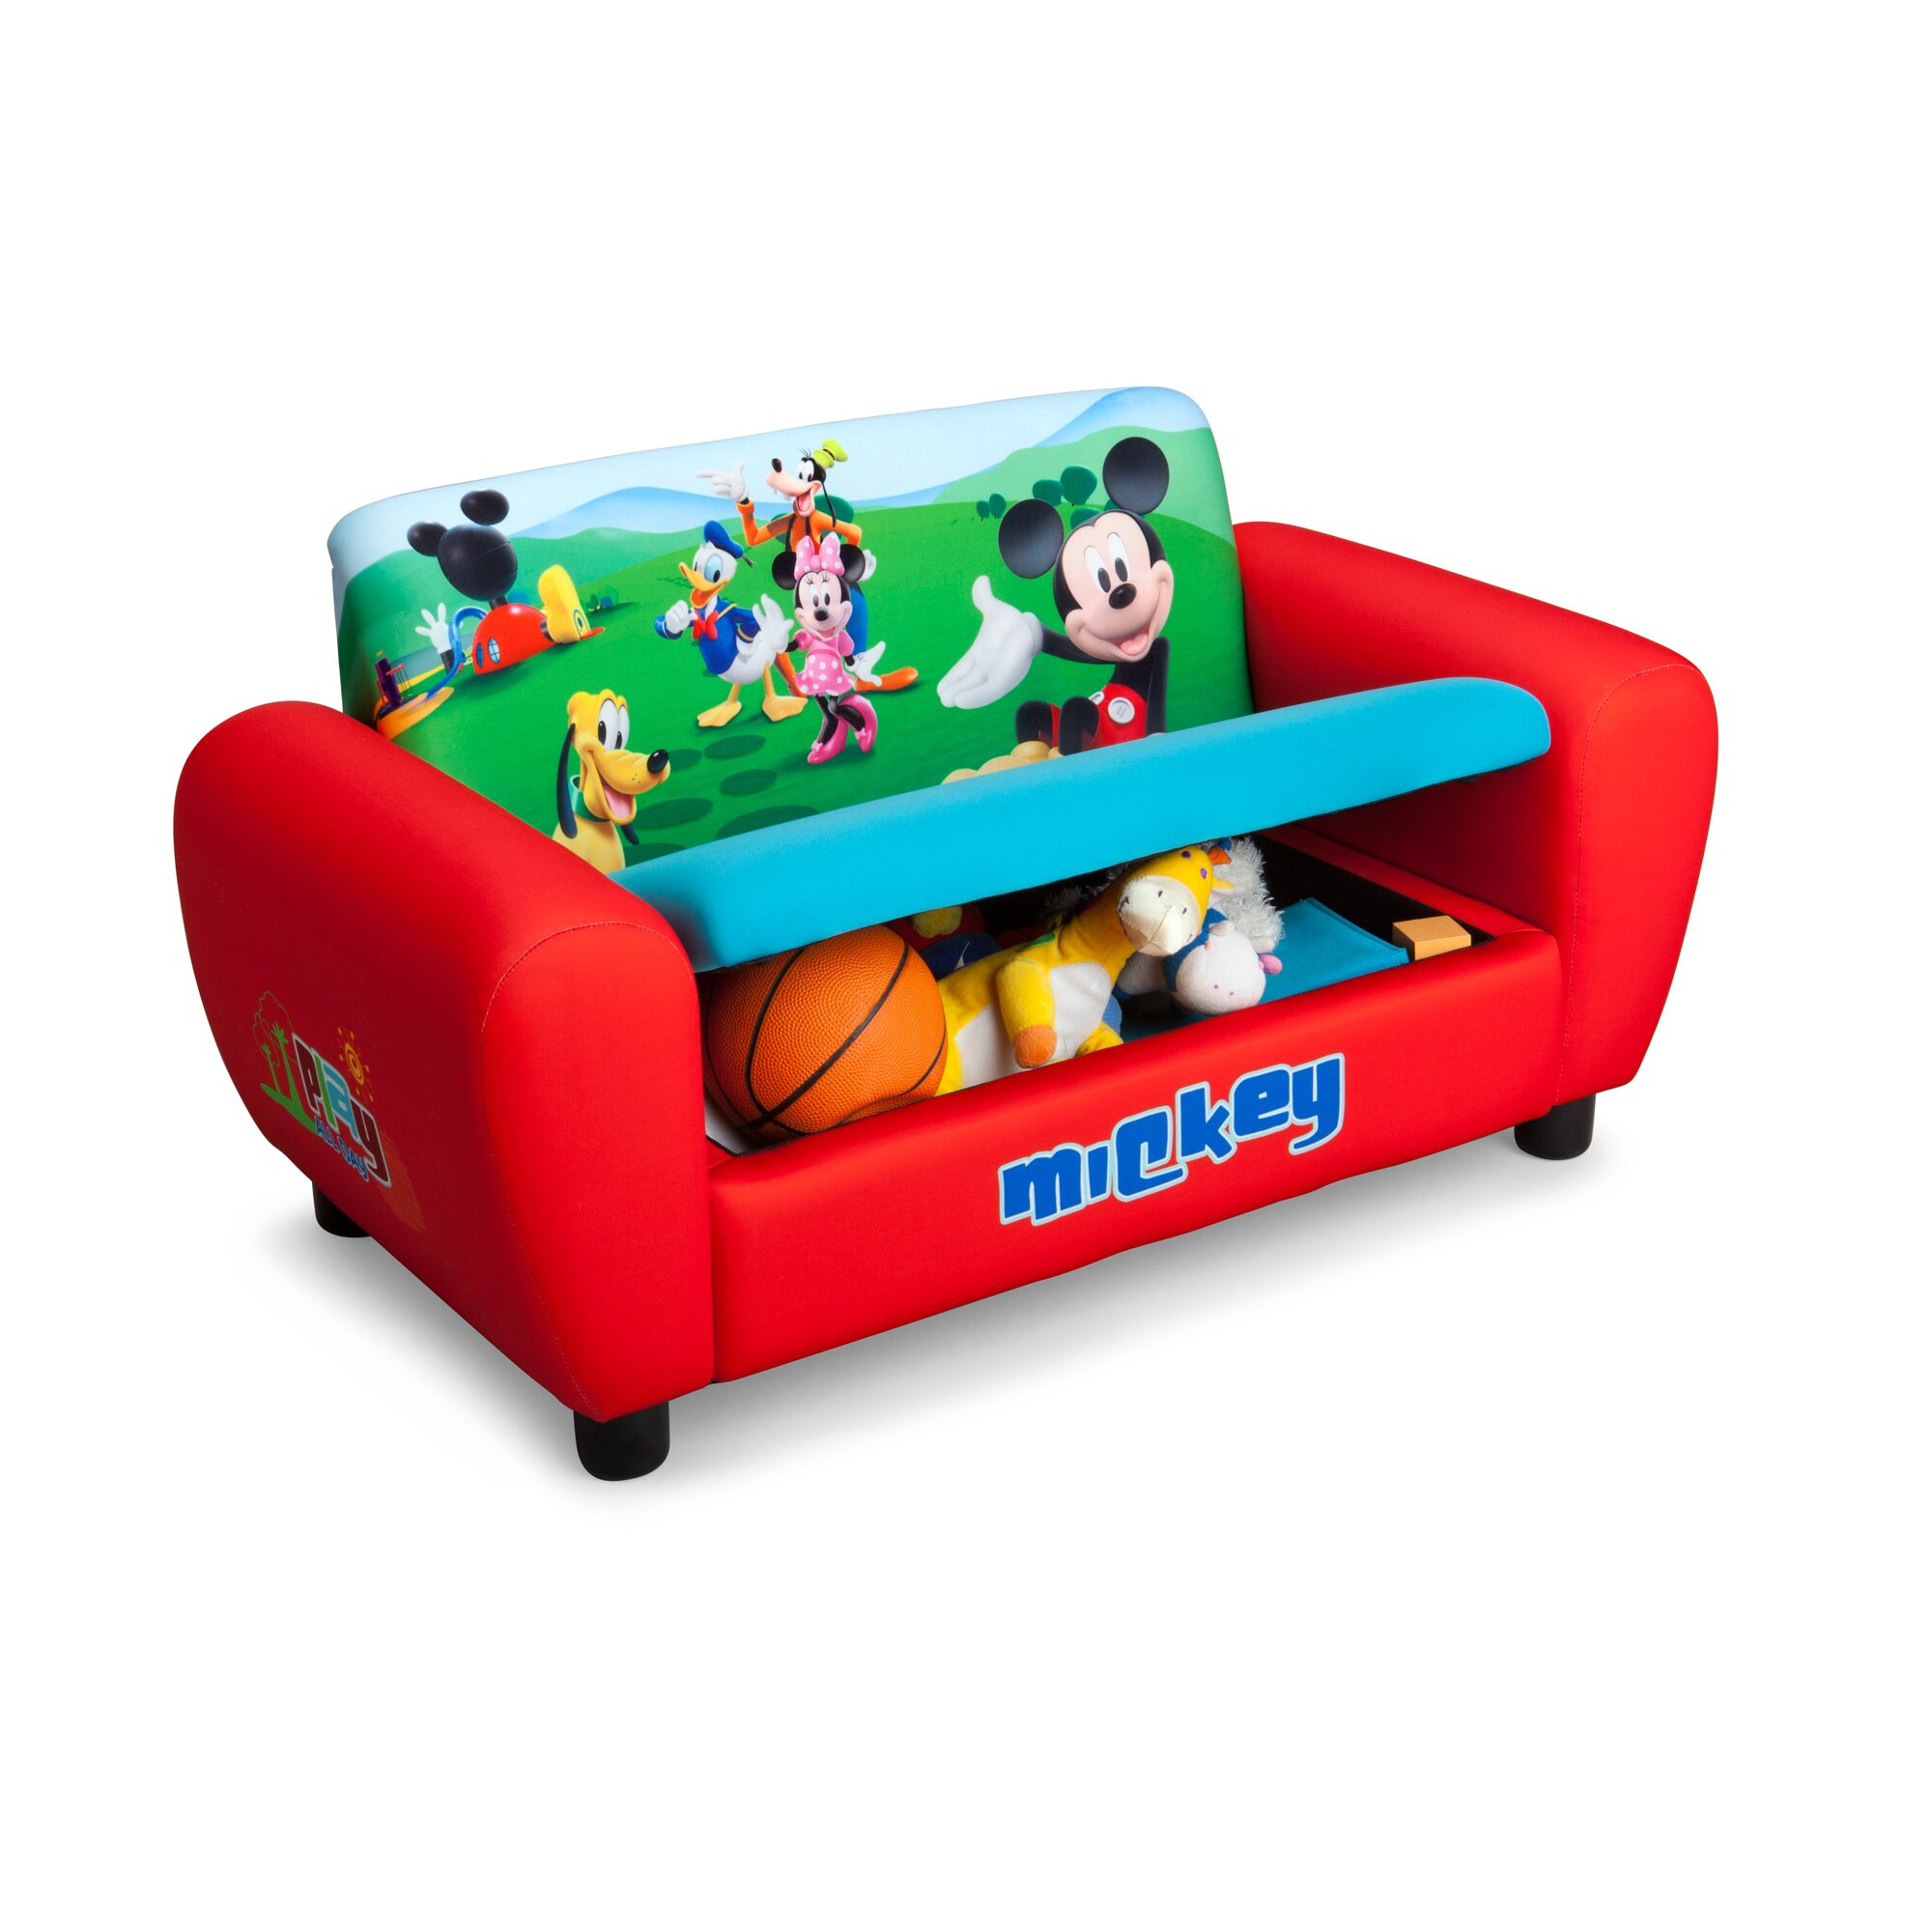 Delta children disney mickey mouse kids sofa wayfair - Sofas cama para ninos ...